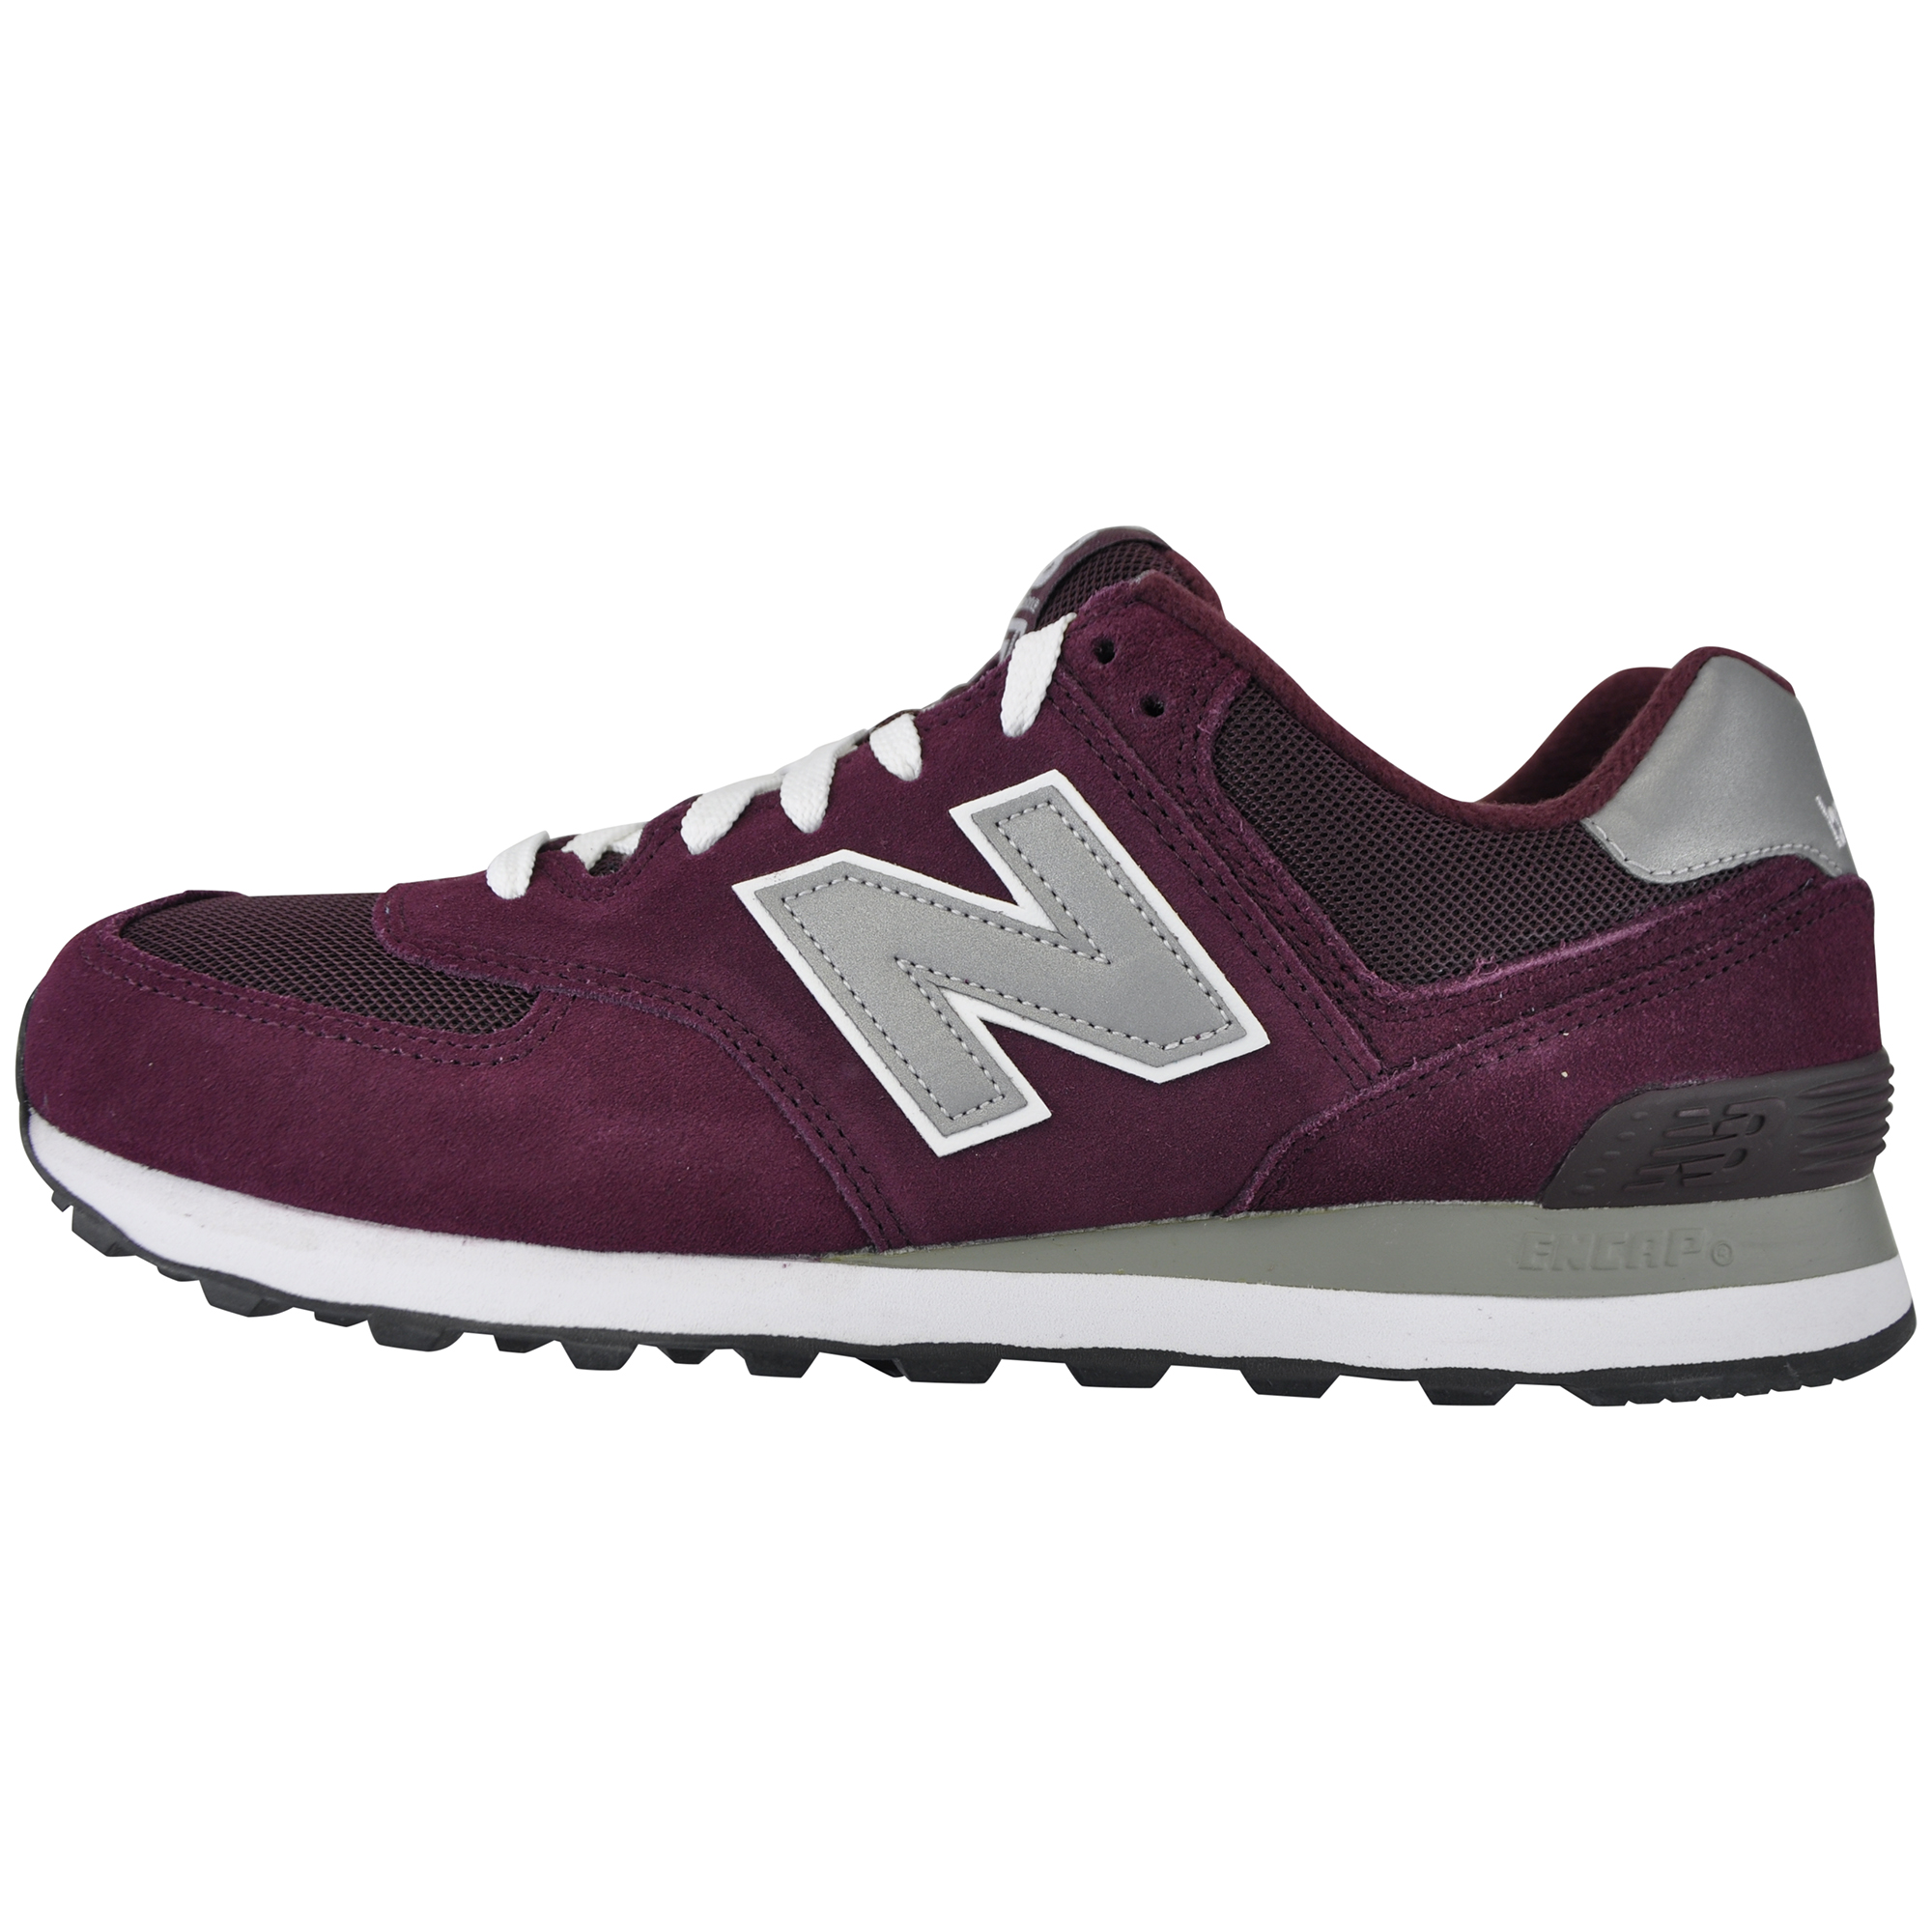 new balance ml574 freizeitschuhe sportschuhe laufschuhe sneaker herren frauen ebay. Black Bedroom Furniture Sets. Home Design Ideas